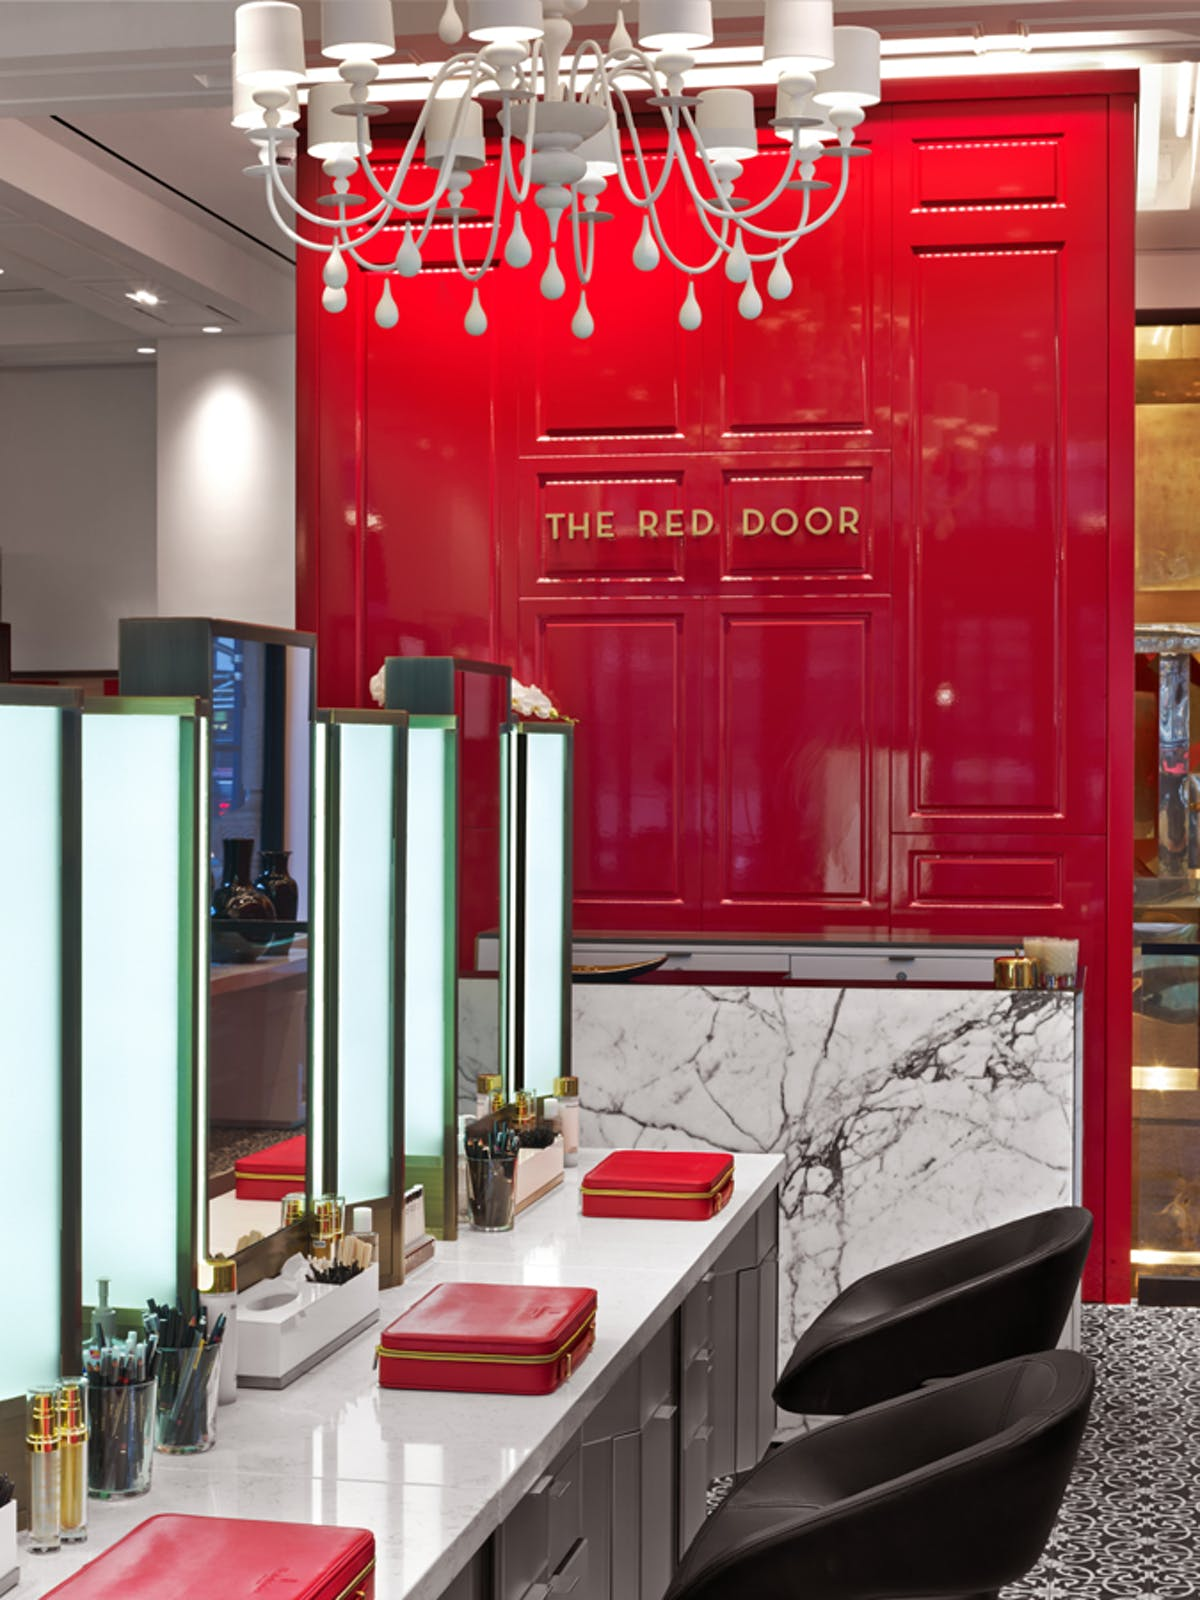 The Red Door Tpg Architecture Archinect